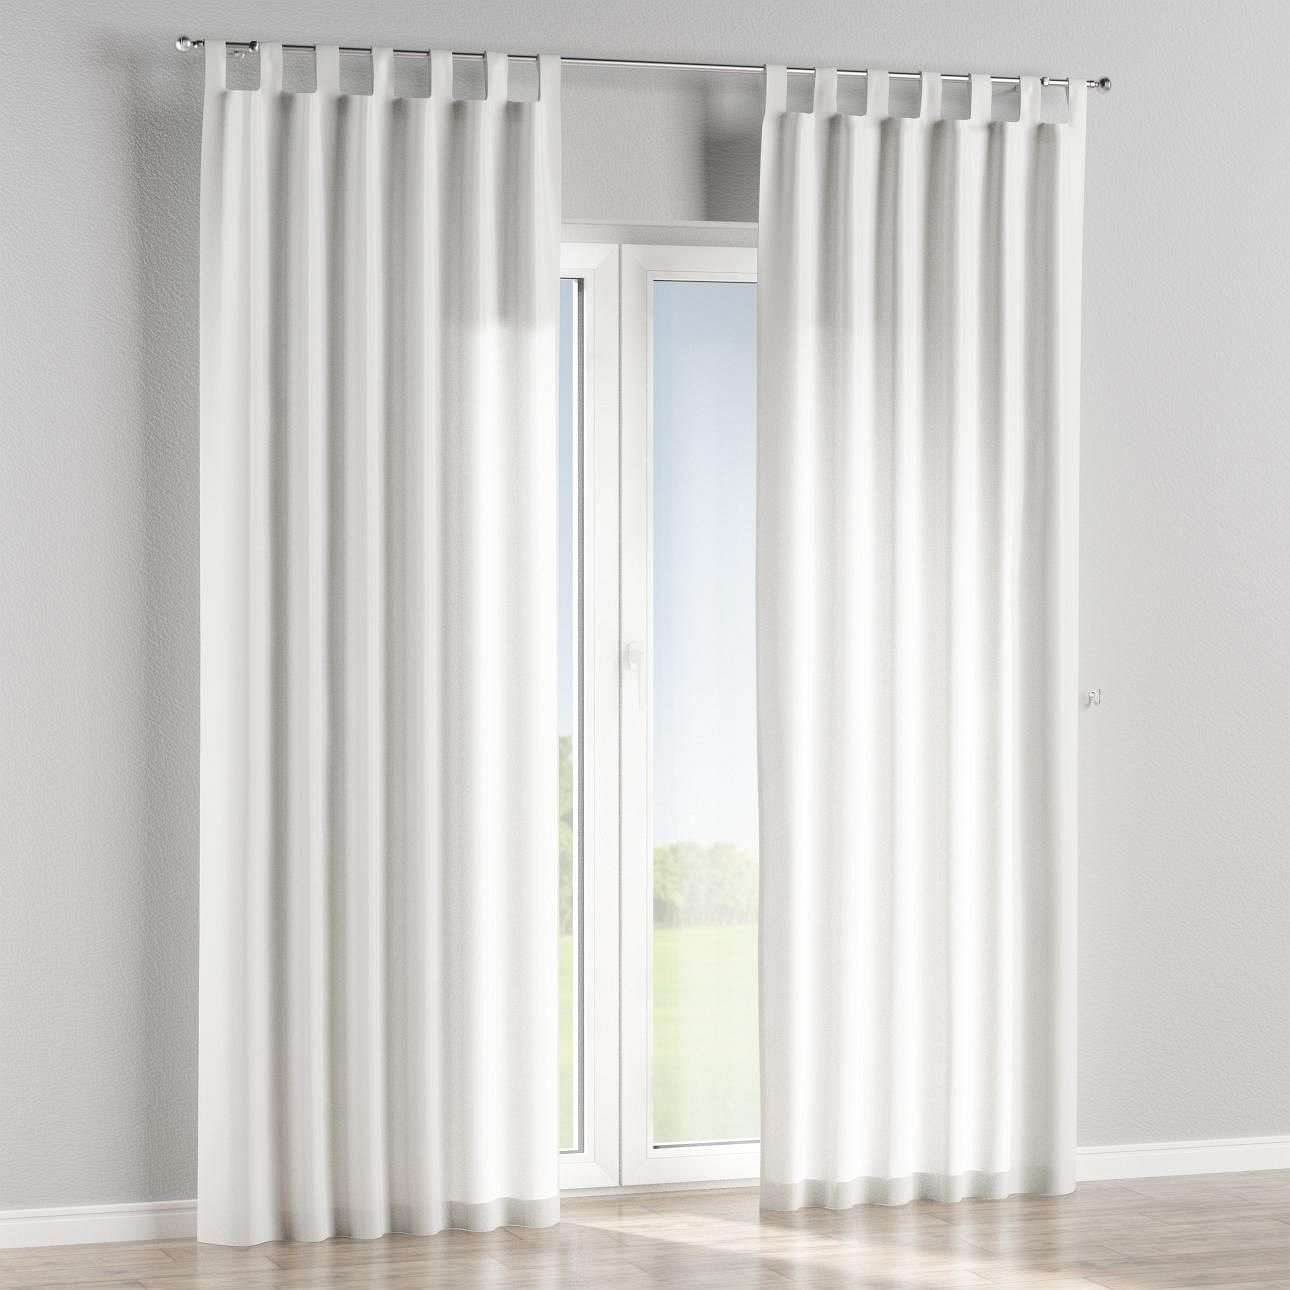 Tab top curtains in collection Taffeta, fabric: 103-86